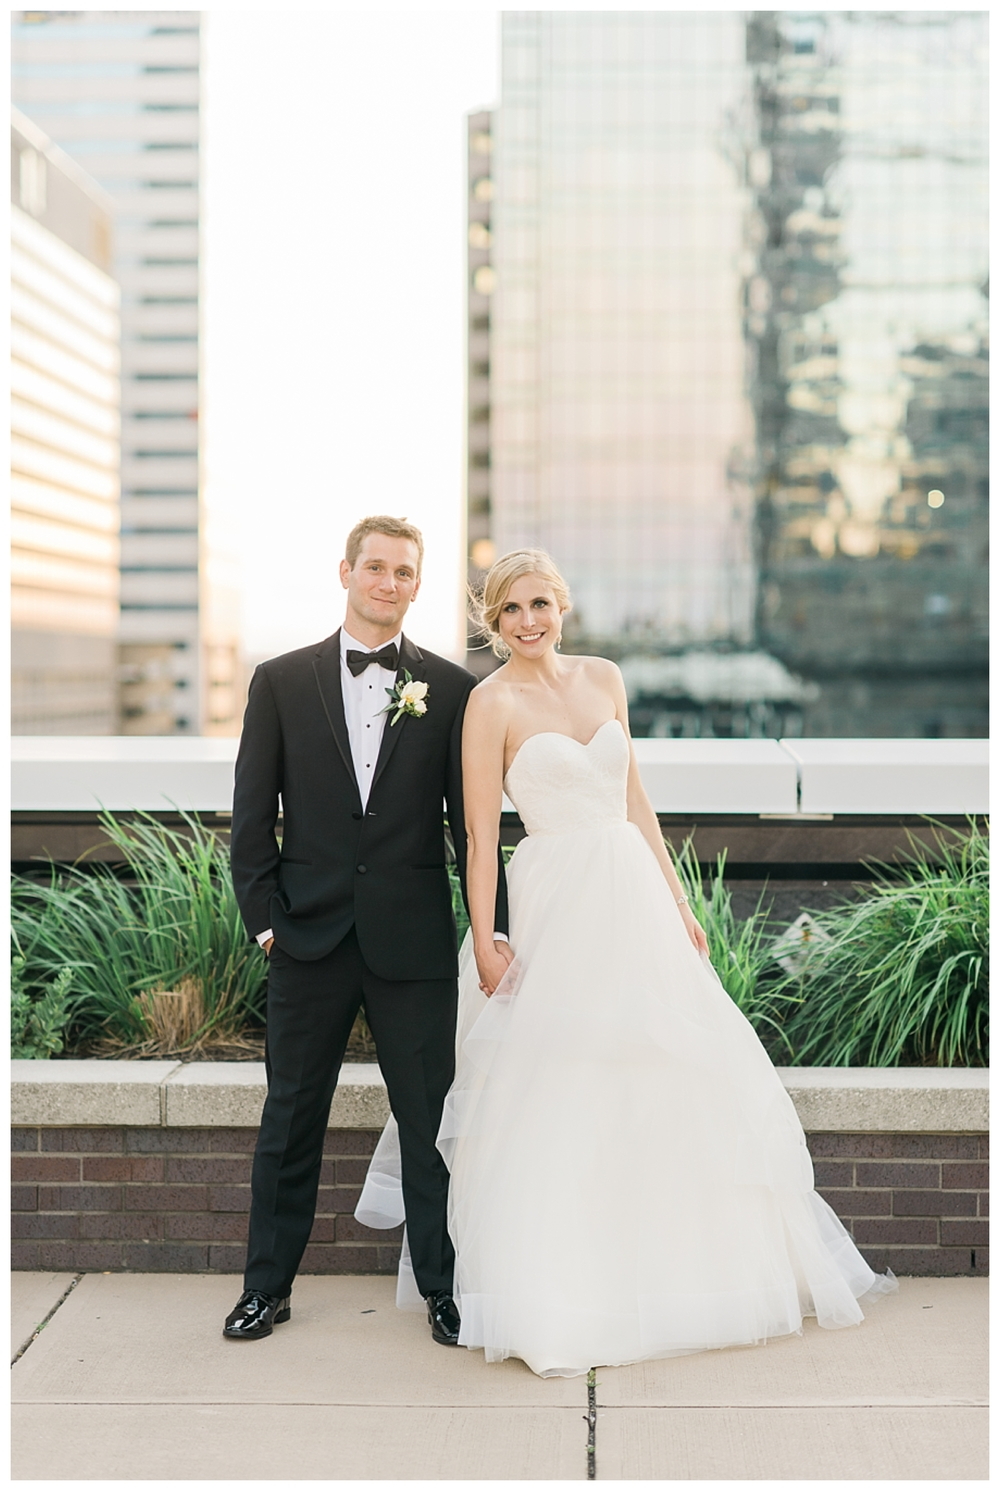 Rebecca_Bridges_Photography_Indianapolis_Wedding_Photographer_4814.jpg